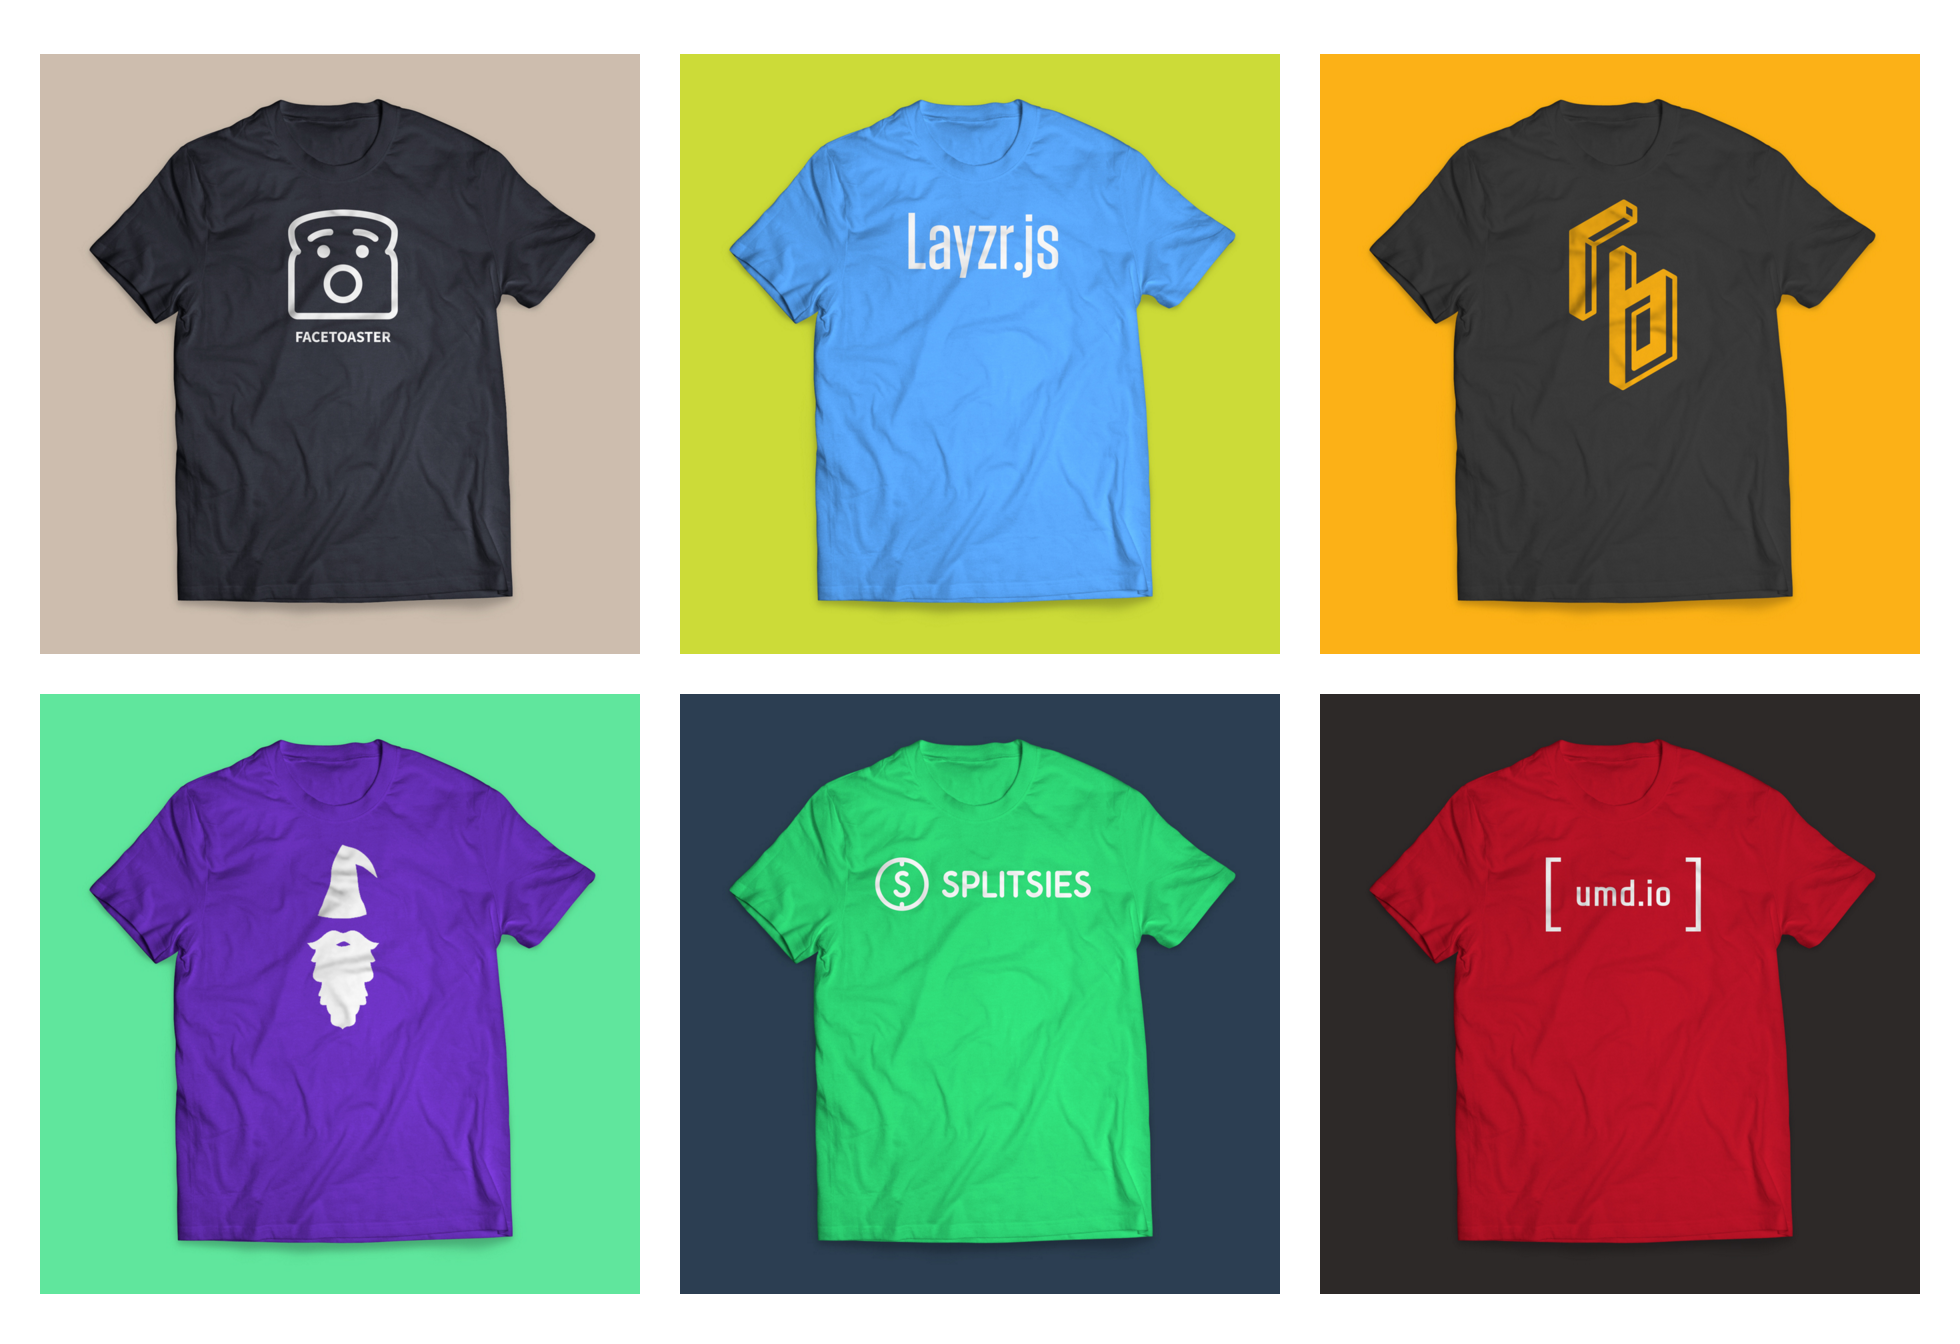 Design your t-shirt - We Want People To Wear The Shirts We Make And Sometimes Despite Top Notch Graphics It S Subtle Misfires That Keep These Shirts On The Hangers Or Boxed